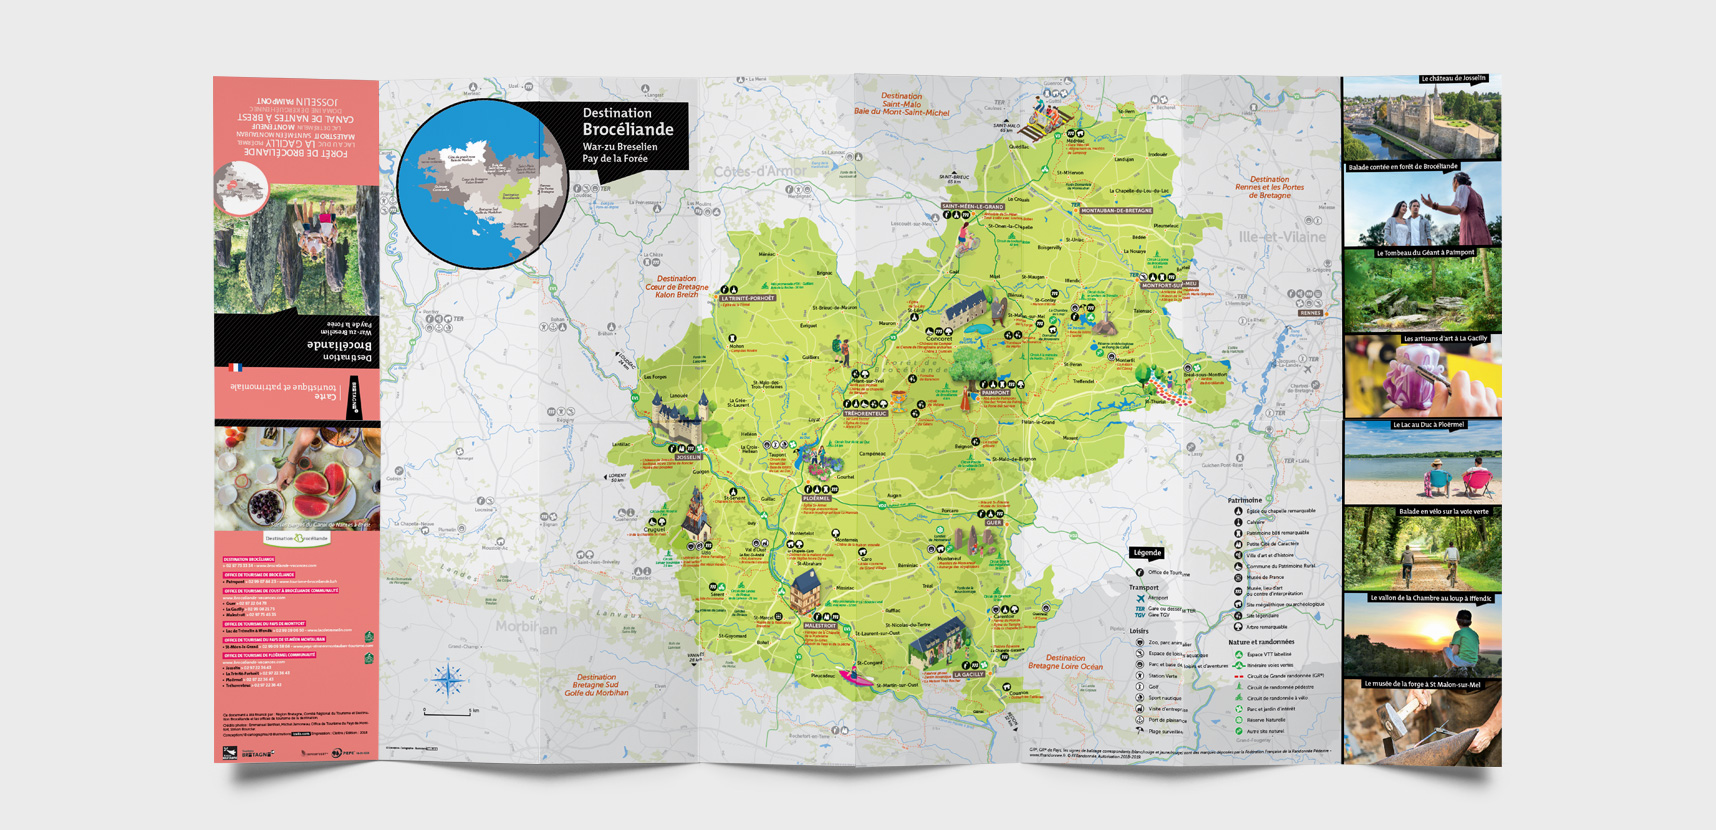 IZATIS_CRTB_carte_destination_broceliande_recto